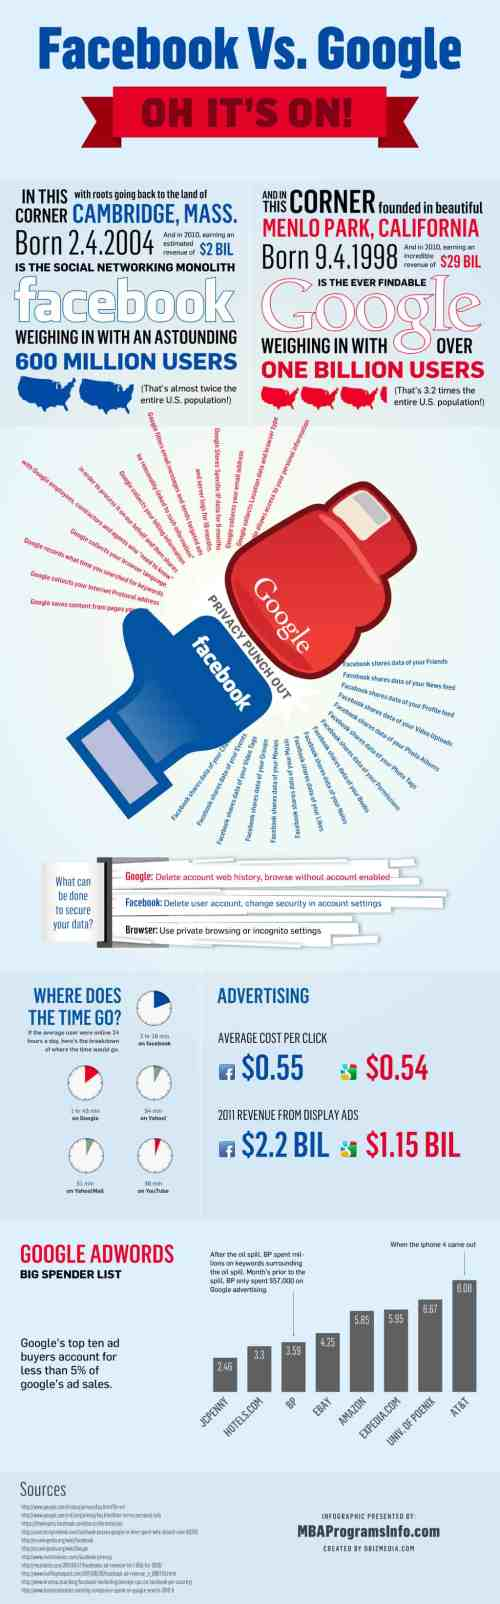 FacebookVsGoogleLrg 319x1024 Facebook vs Google : The War Is Still On [Infographic]